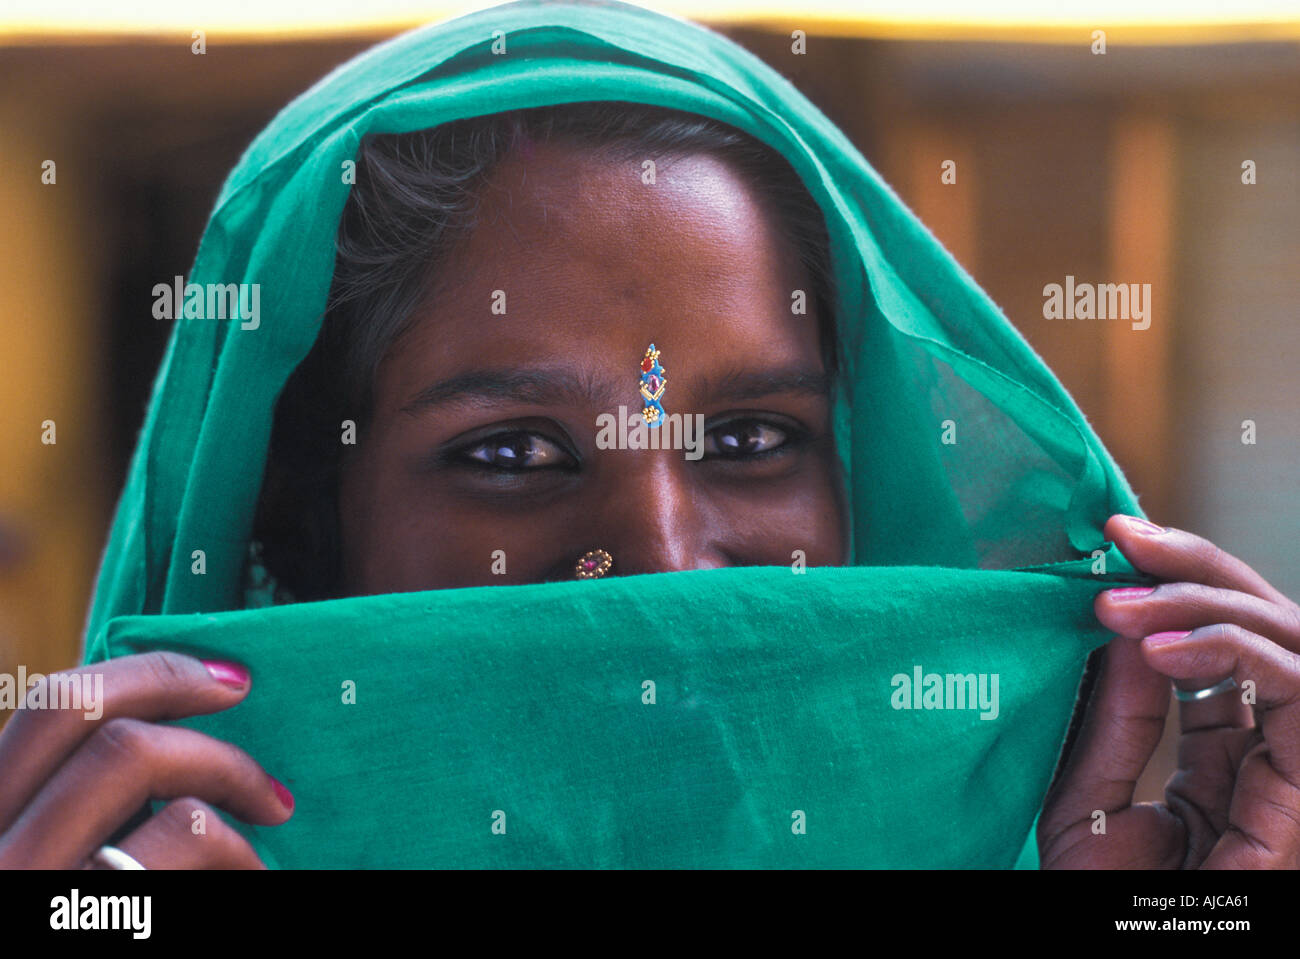 Friendly Hindu woman from Uttar Pradesh with green headcloth veiling her smile India - Stock Image